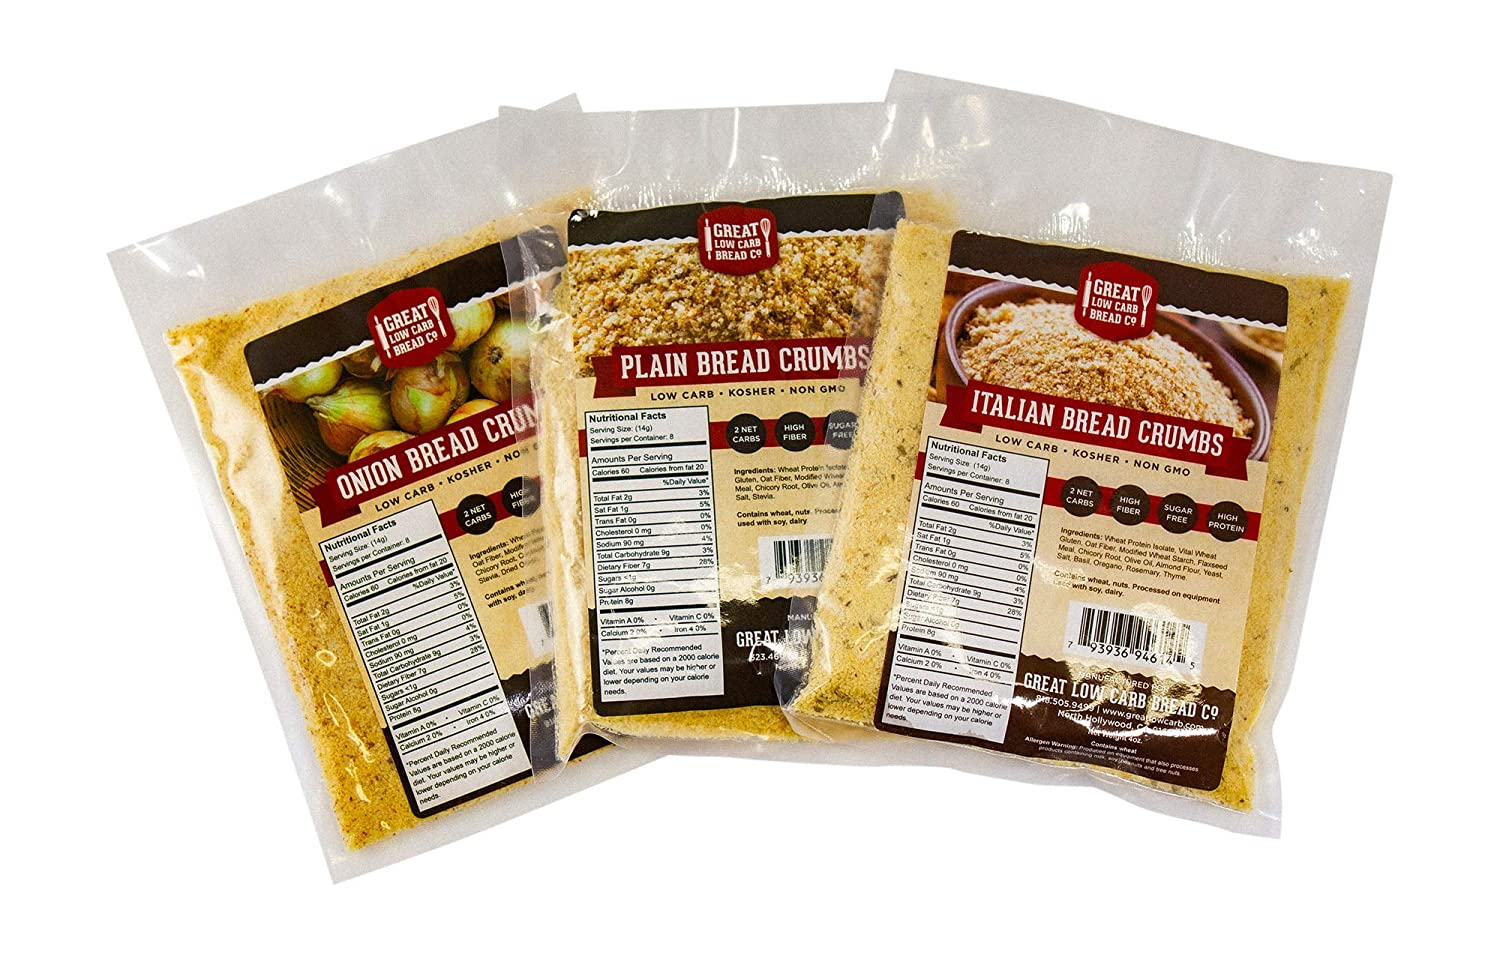 Low Carb Bread Crumbs Great Low Carb Bread Company High Protein High Fiber Keto Friendly Non Gmo Variety Pack Plain Italian Onion 4 Oz Pack Of 3 Amazon Com Grocery Gourmet Food